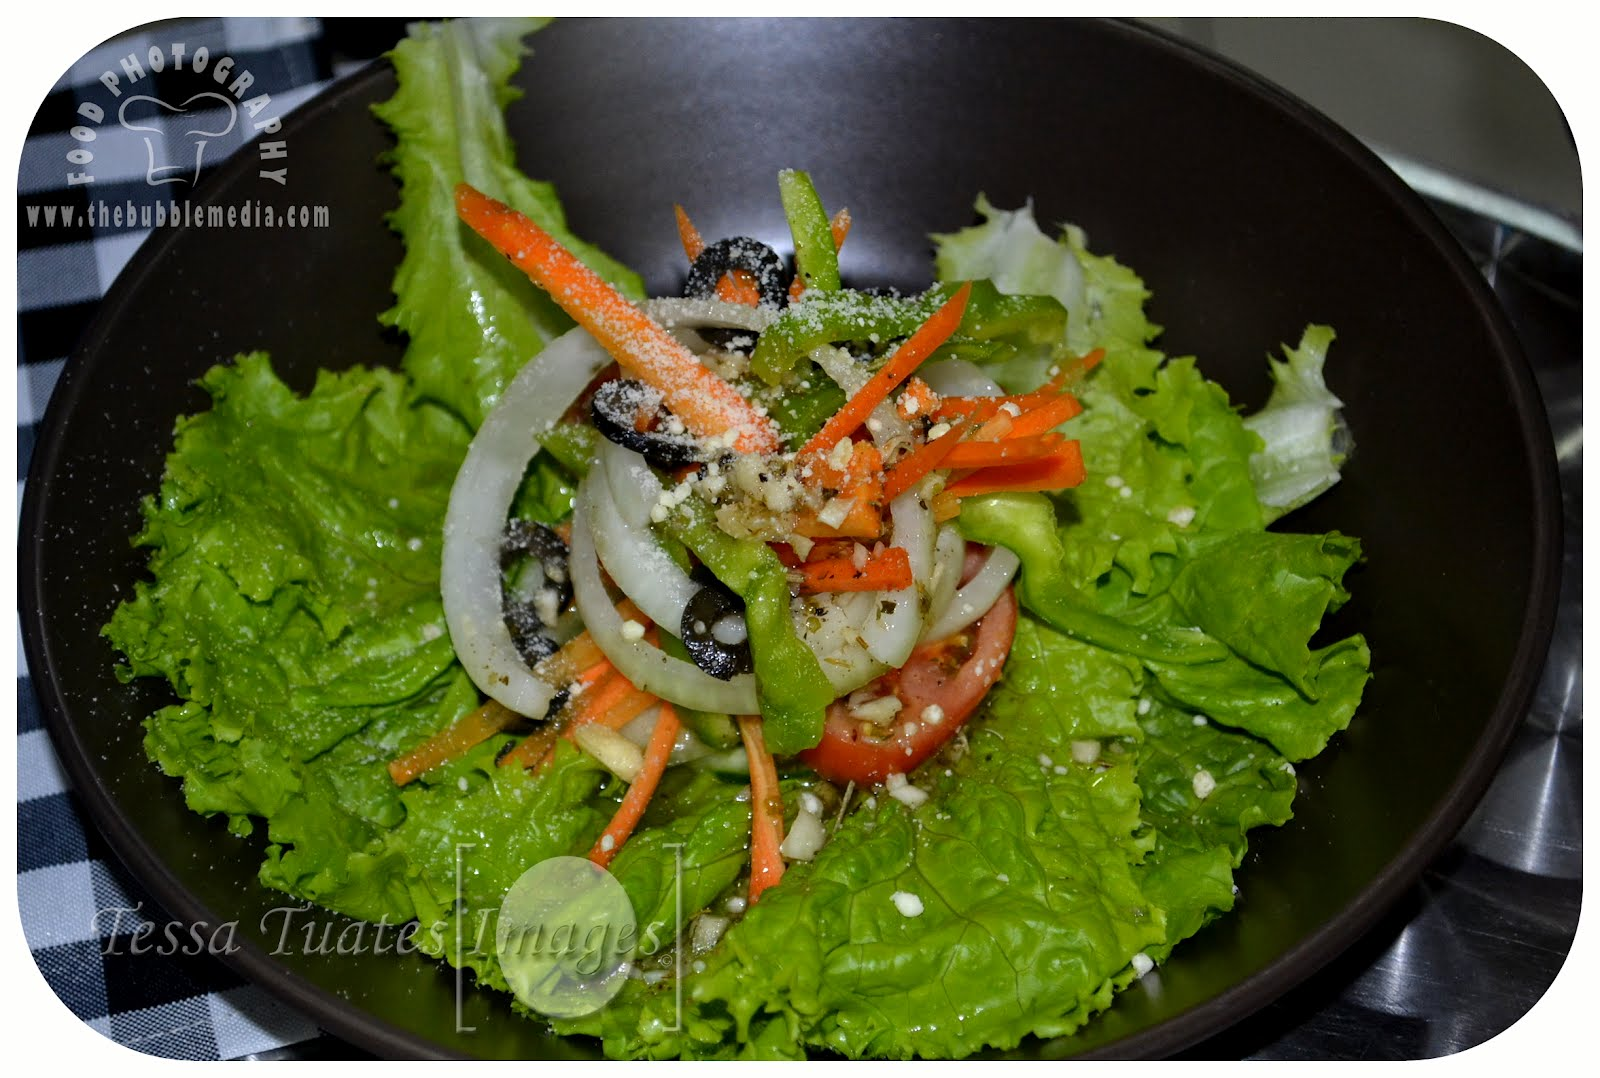 Fresh Garden salad,  Baguio grown garden vegetables served with oilives, our house vinaigrette and parmesan cheese. http://www.thebubblemedia.com